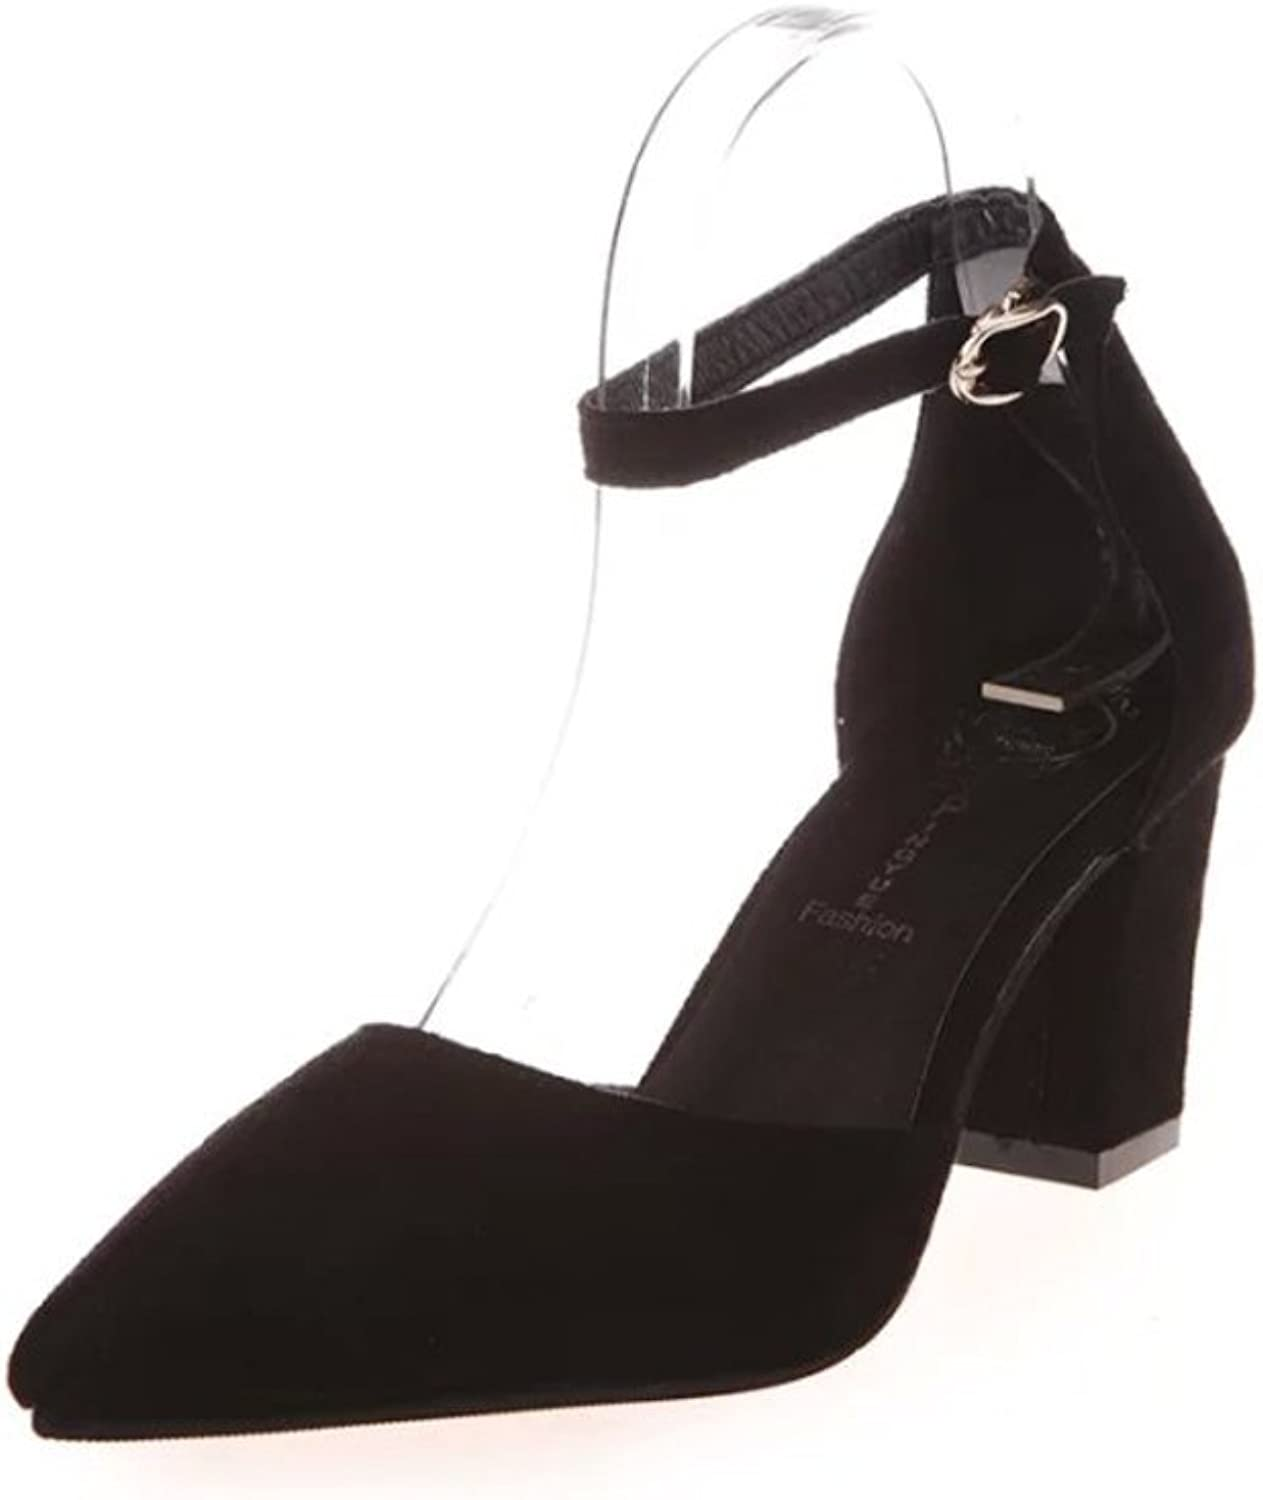 Summer heavy with pointy shoes Thin buckle heeled strappy Sandals